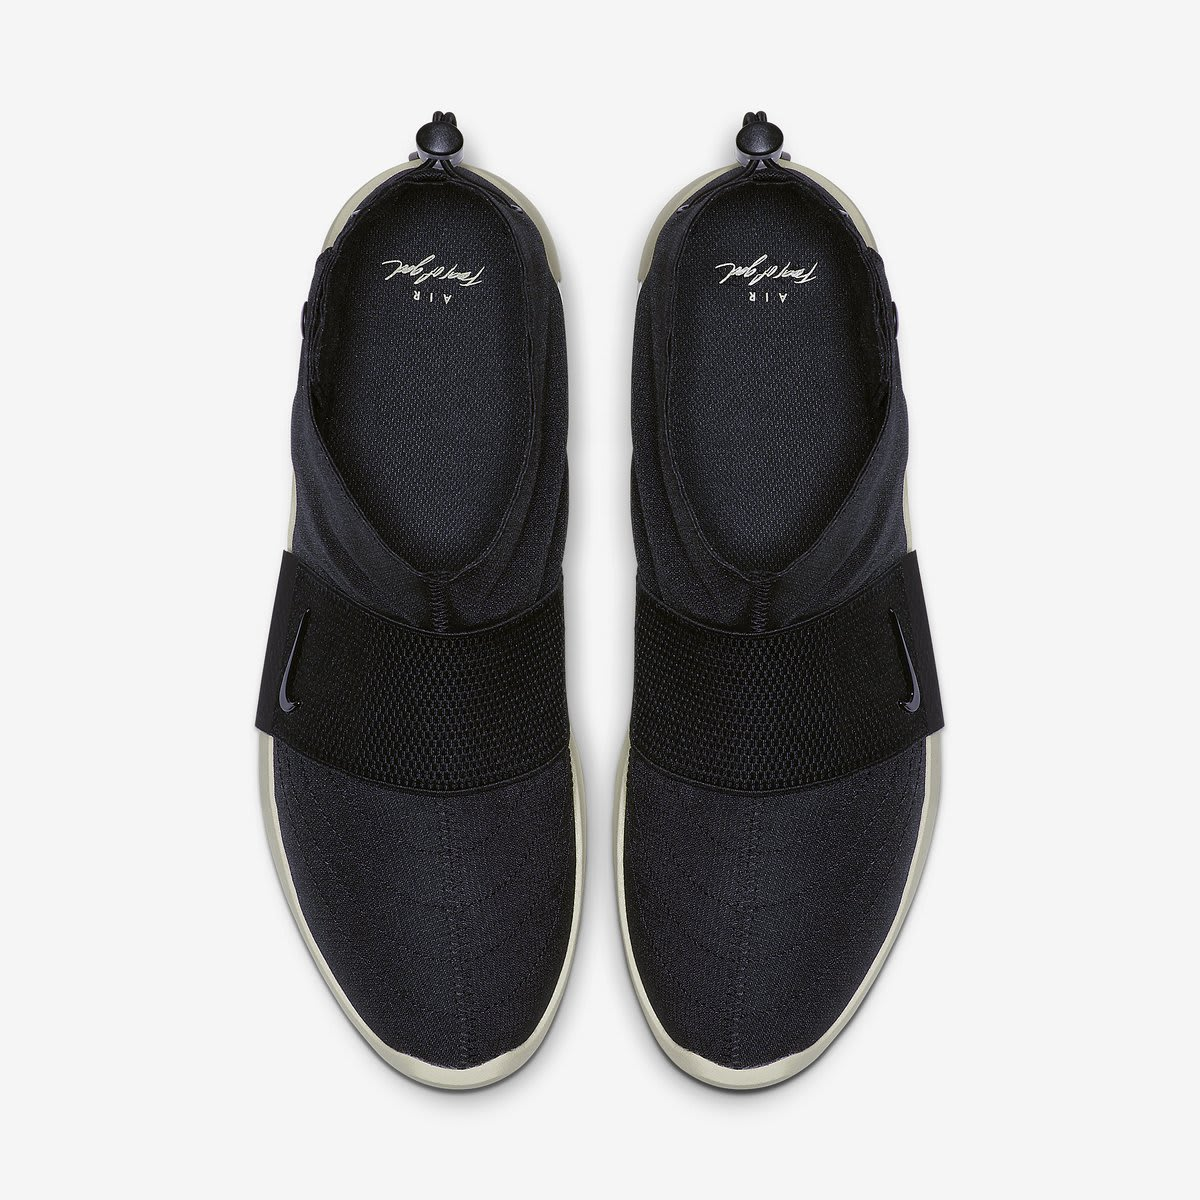 3d1d1788 Image via @pyleaks · Nike Air Fear of God Moccasin 'Black/Black-Fossil'  (Top)